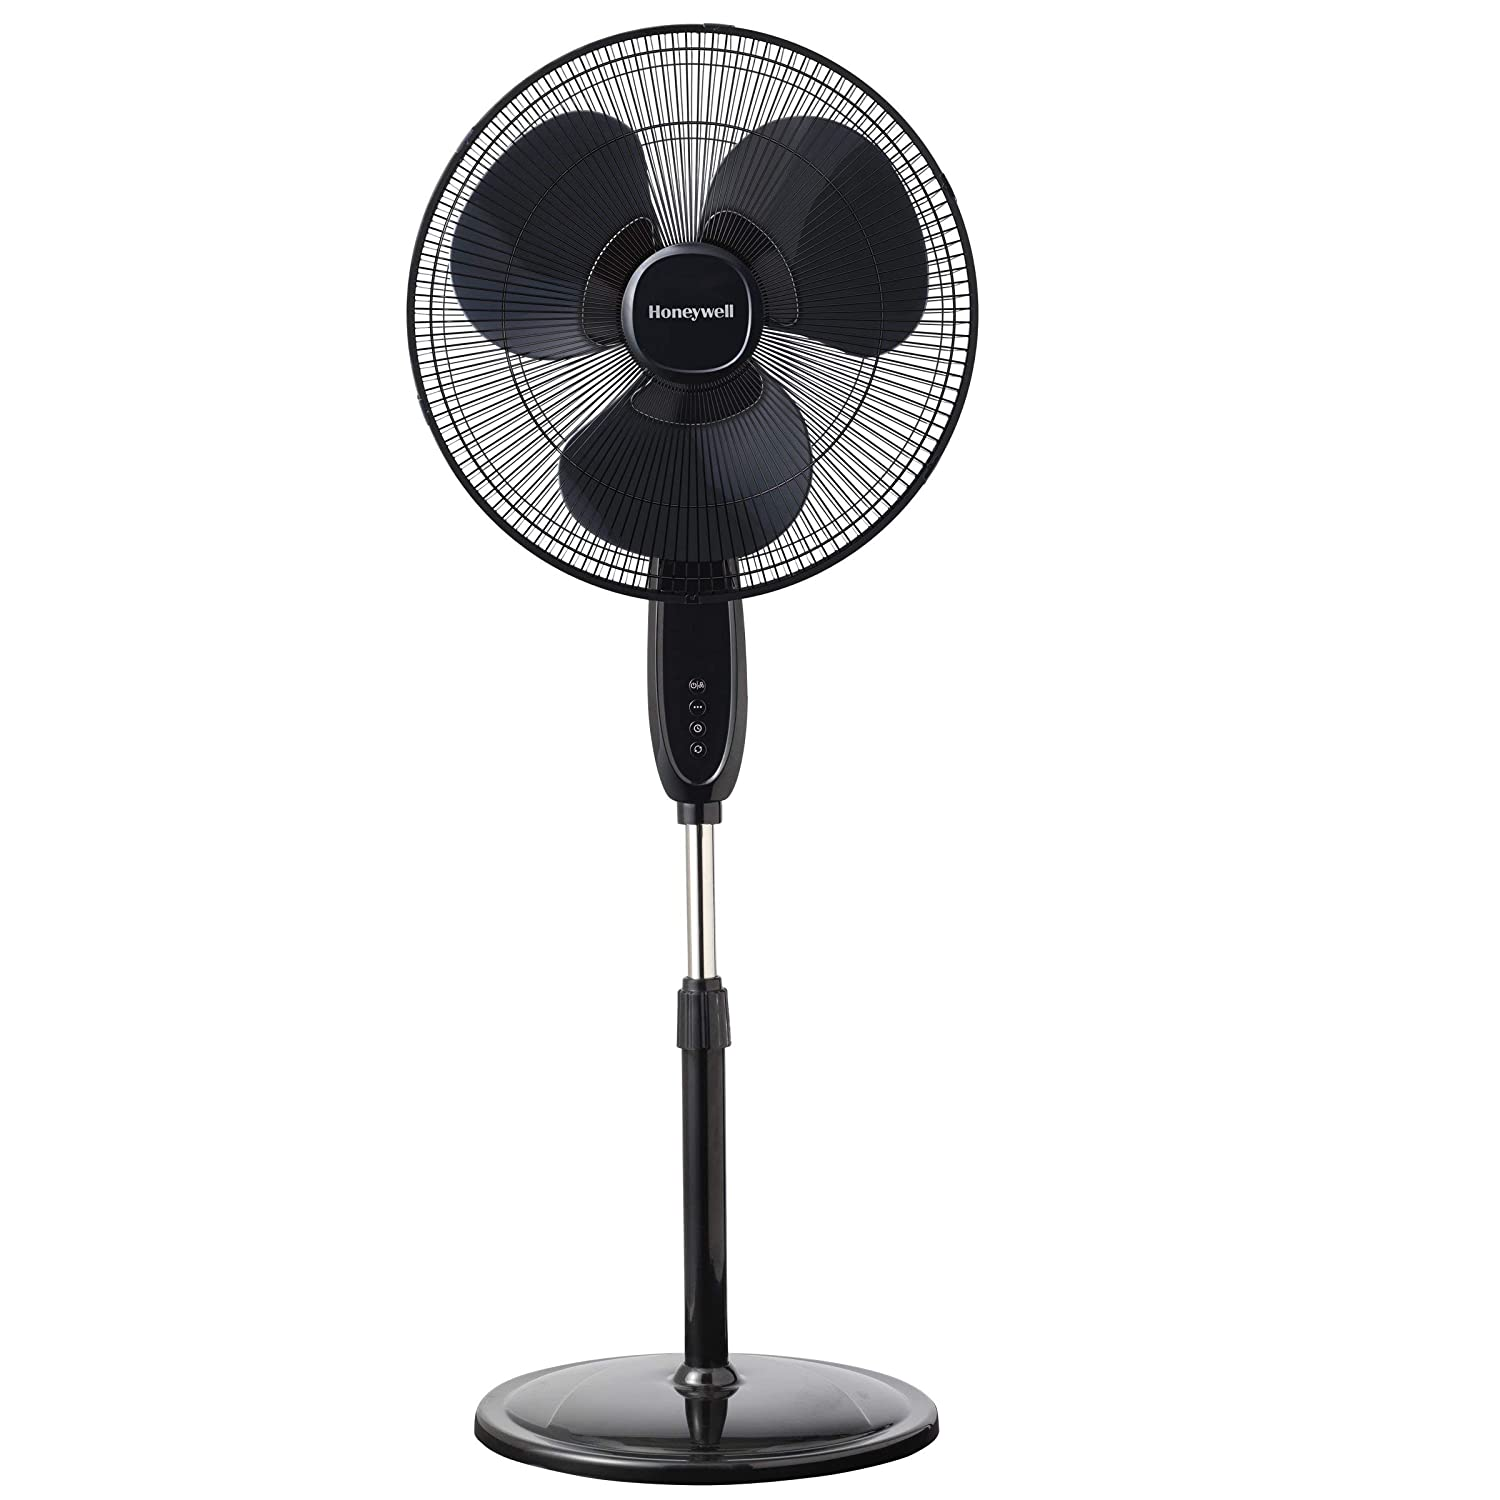 Honeywell Double Blade 16 Pedestal Fan Black With Remote Control, Oscillation, Auto-Off & 3 Power Settings (Renewed)